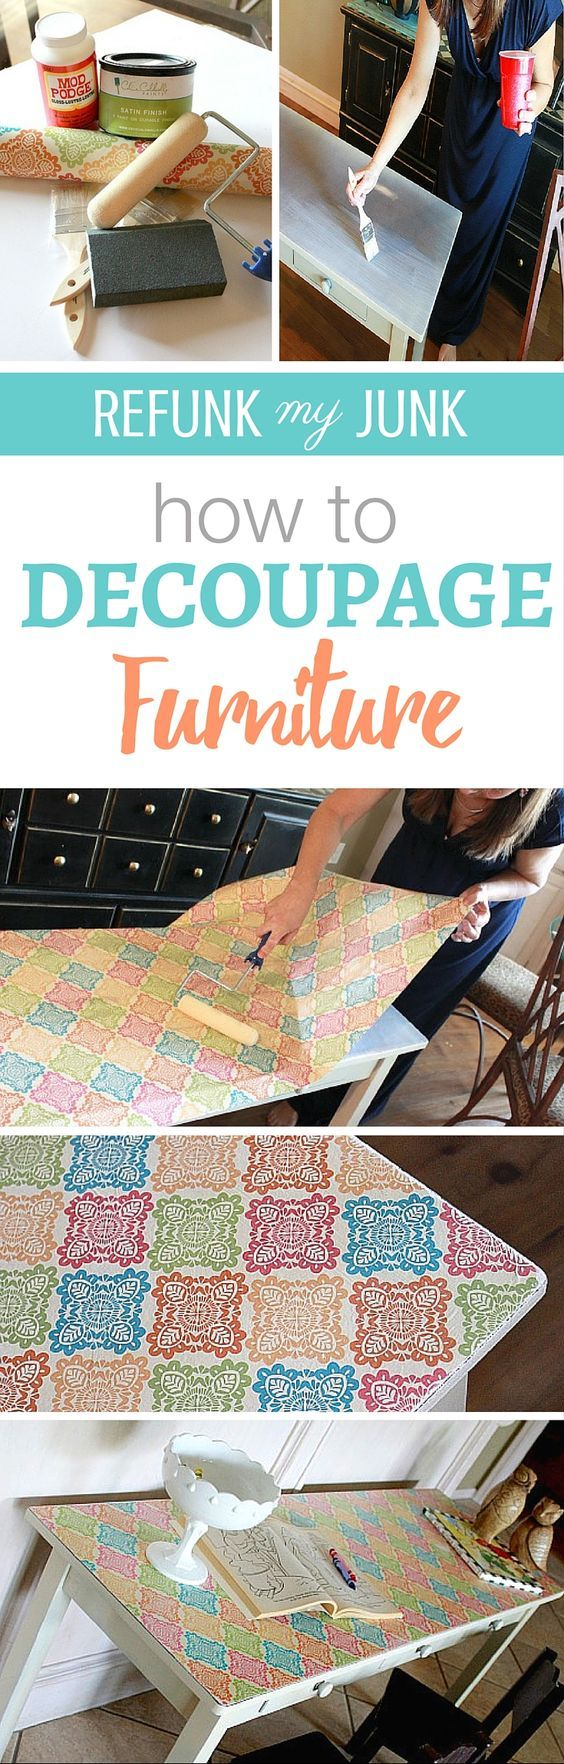 The 25 best how to decoupage furniture ideas on pinterest for Cadlow mural world